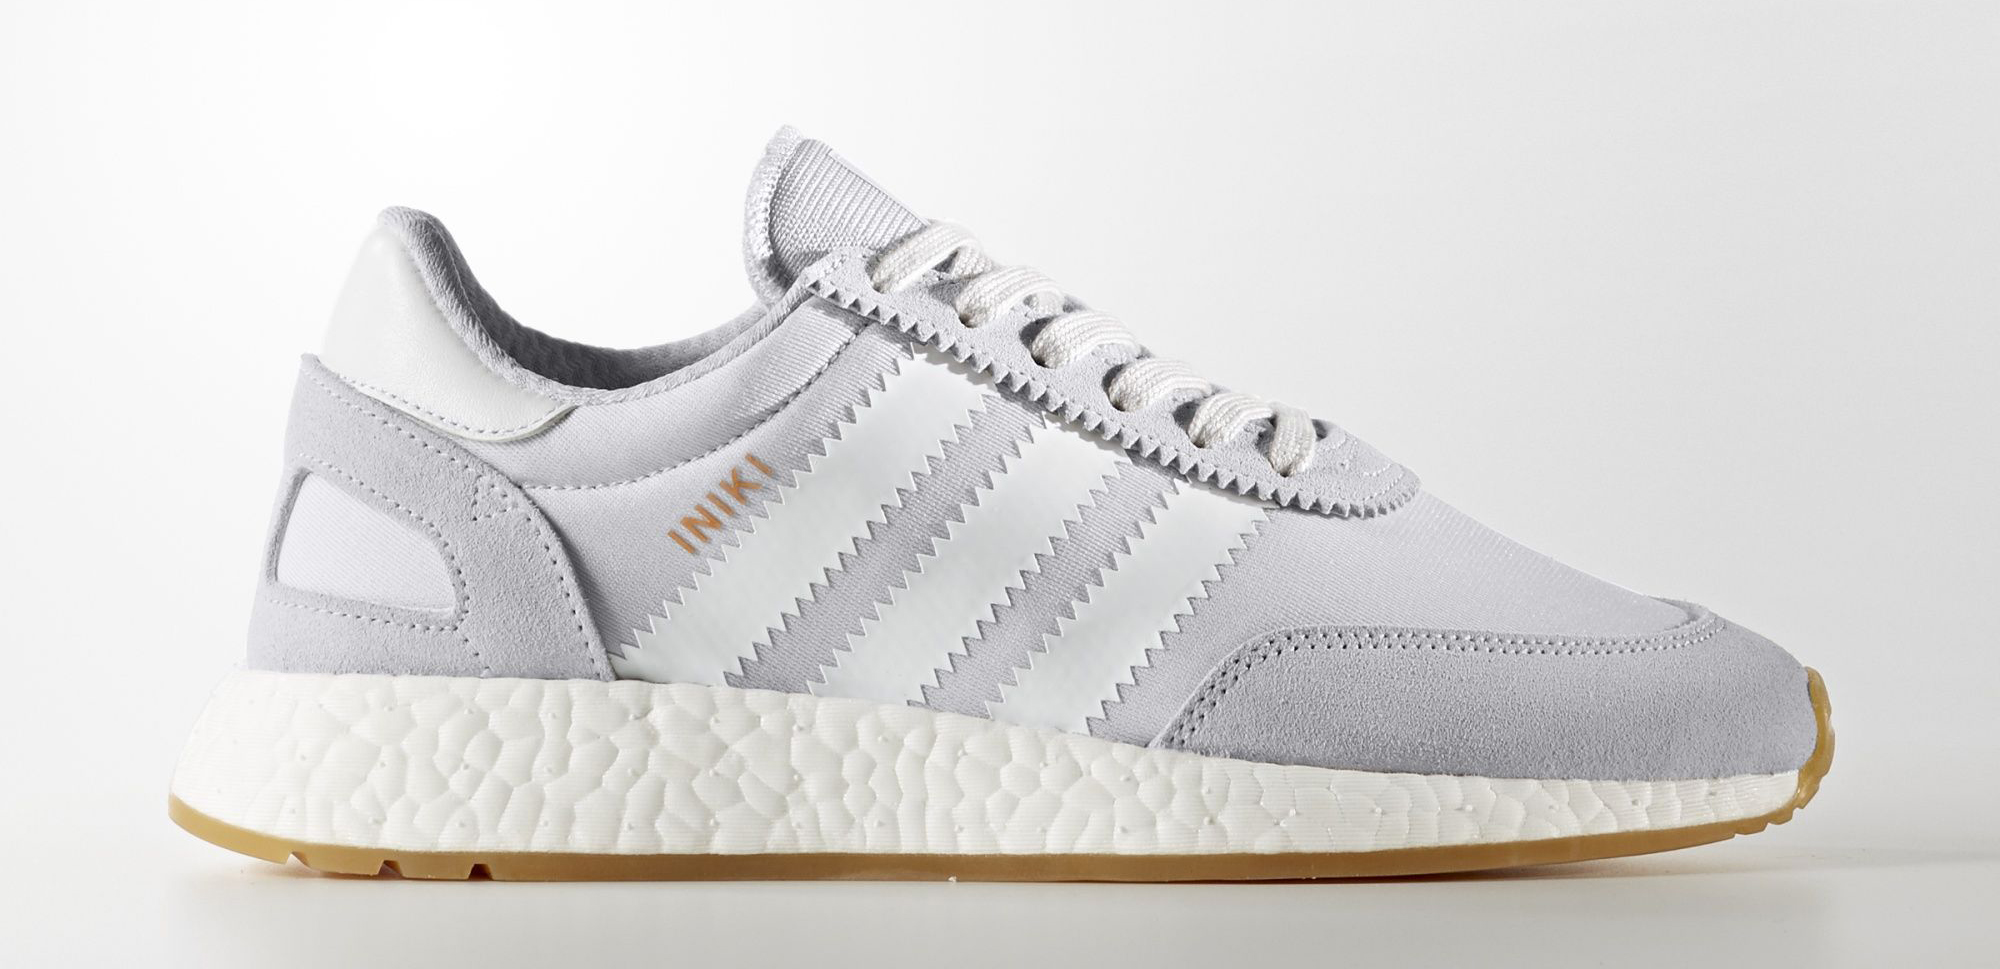 adidas w iniki runner grey gum aio bot releases. Black Bedroom Furniture Sets. Home Design Ideas